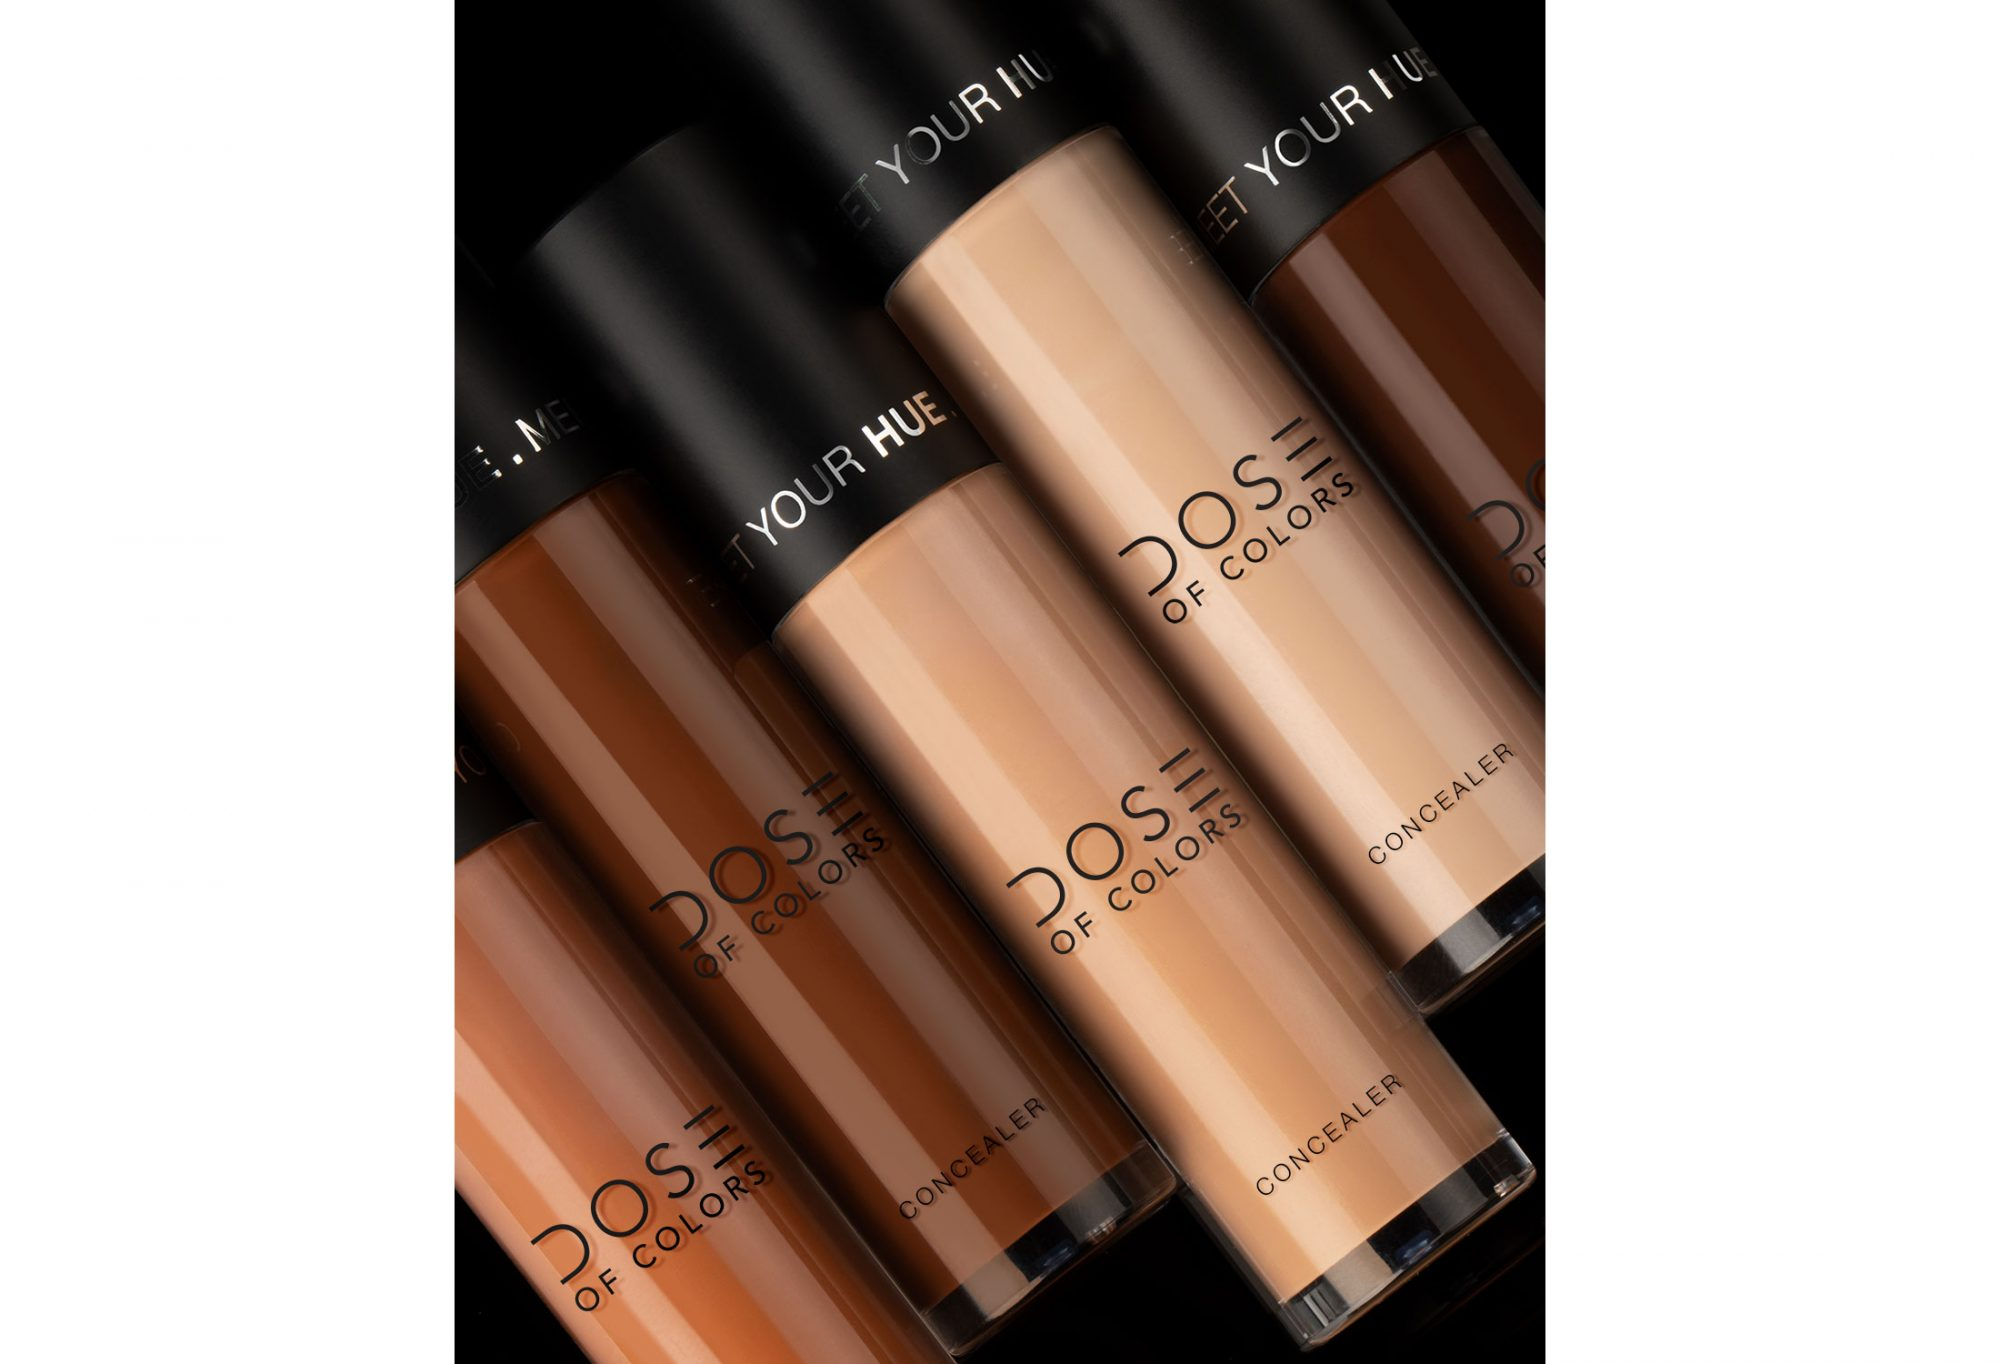 A New Concealer Just Launched That You Need To Know About